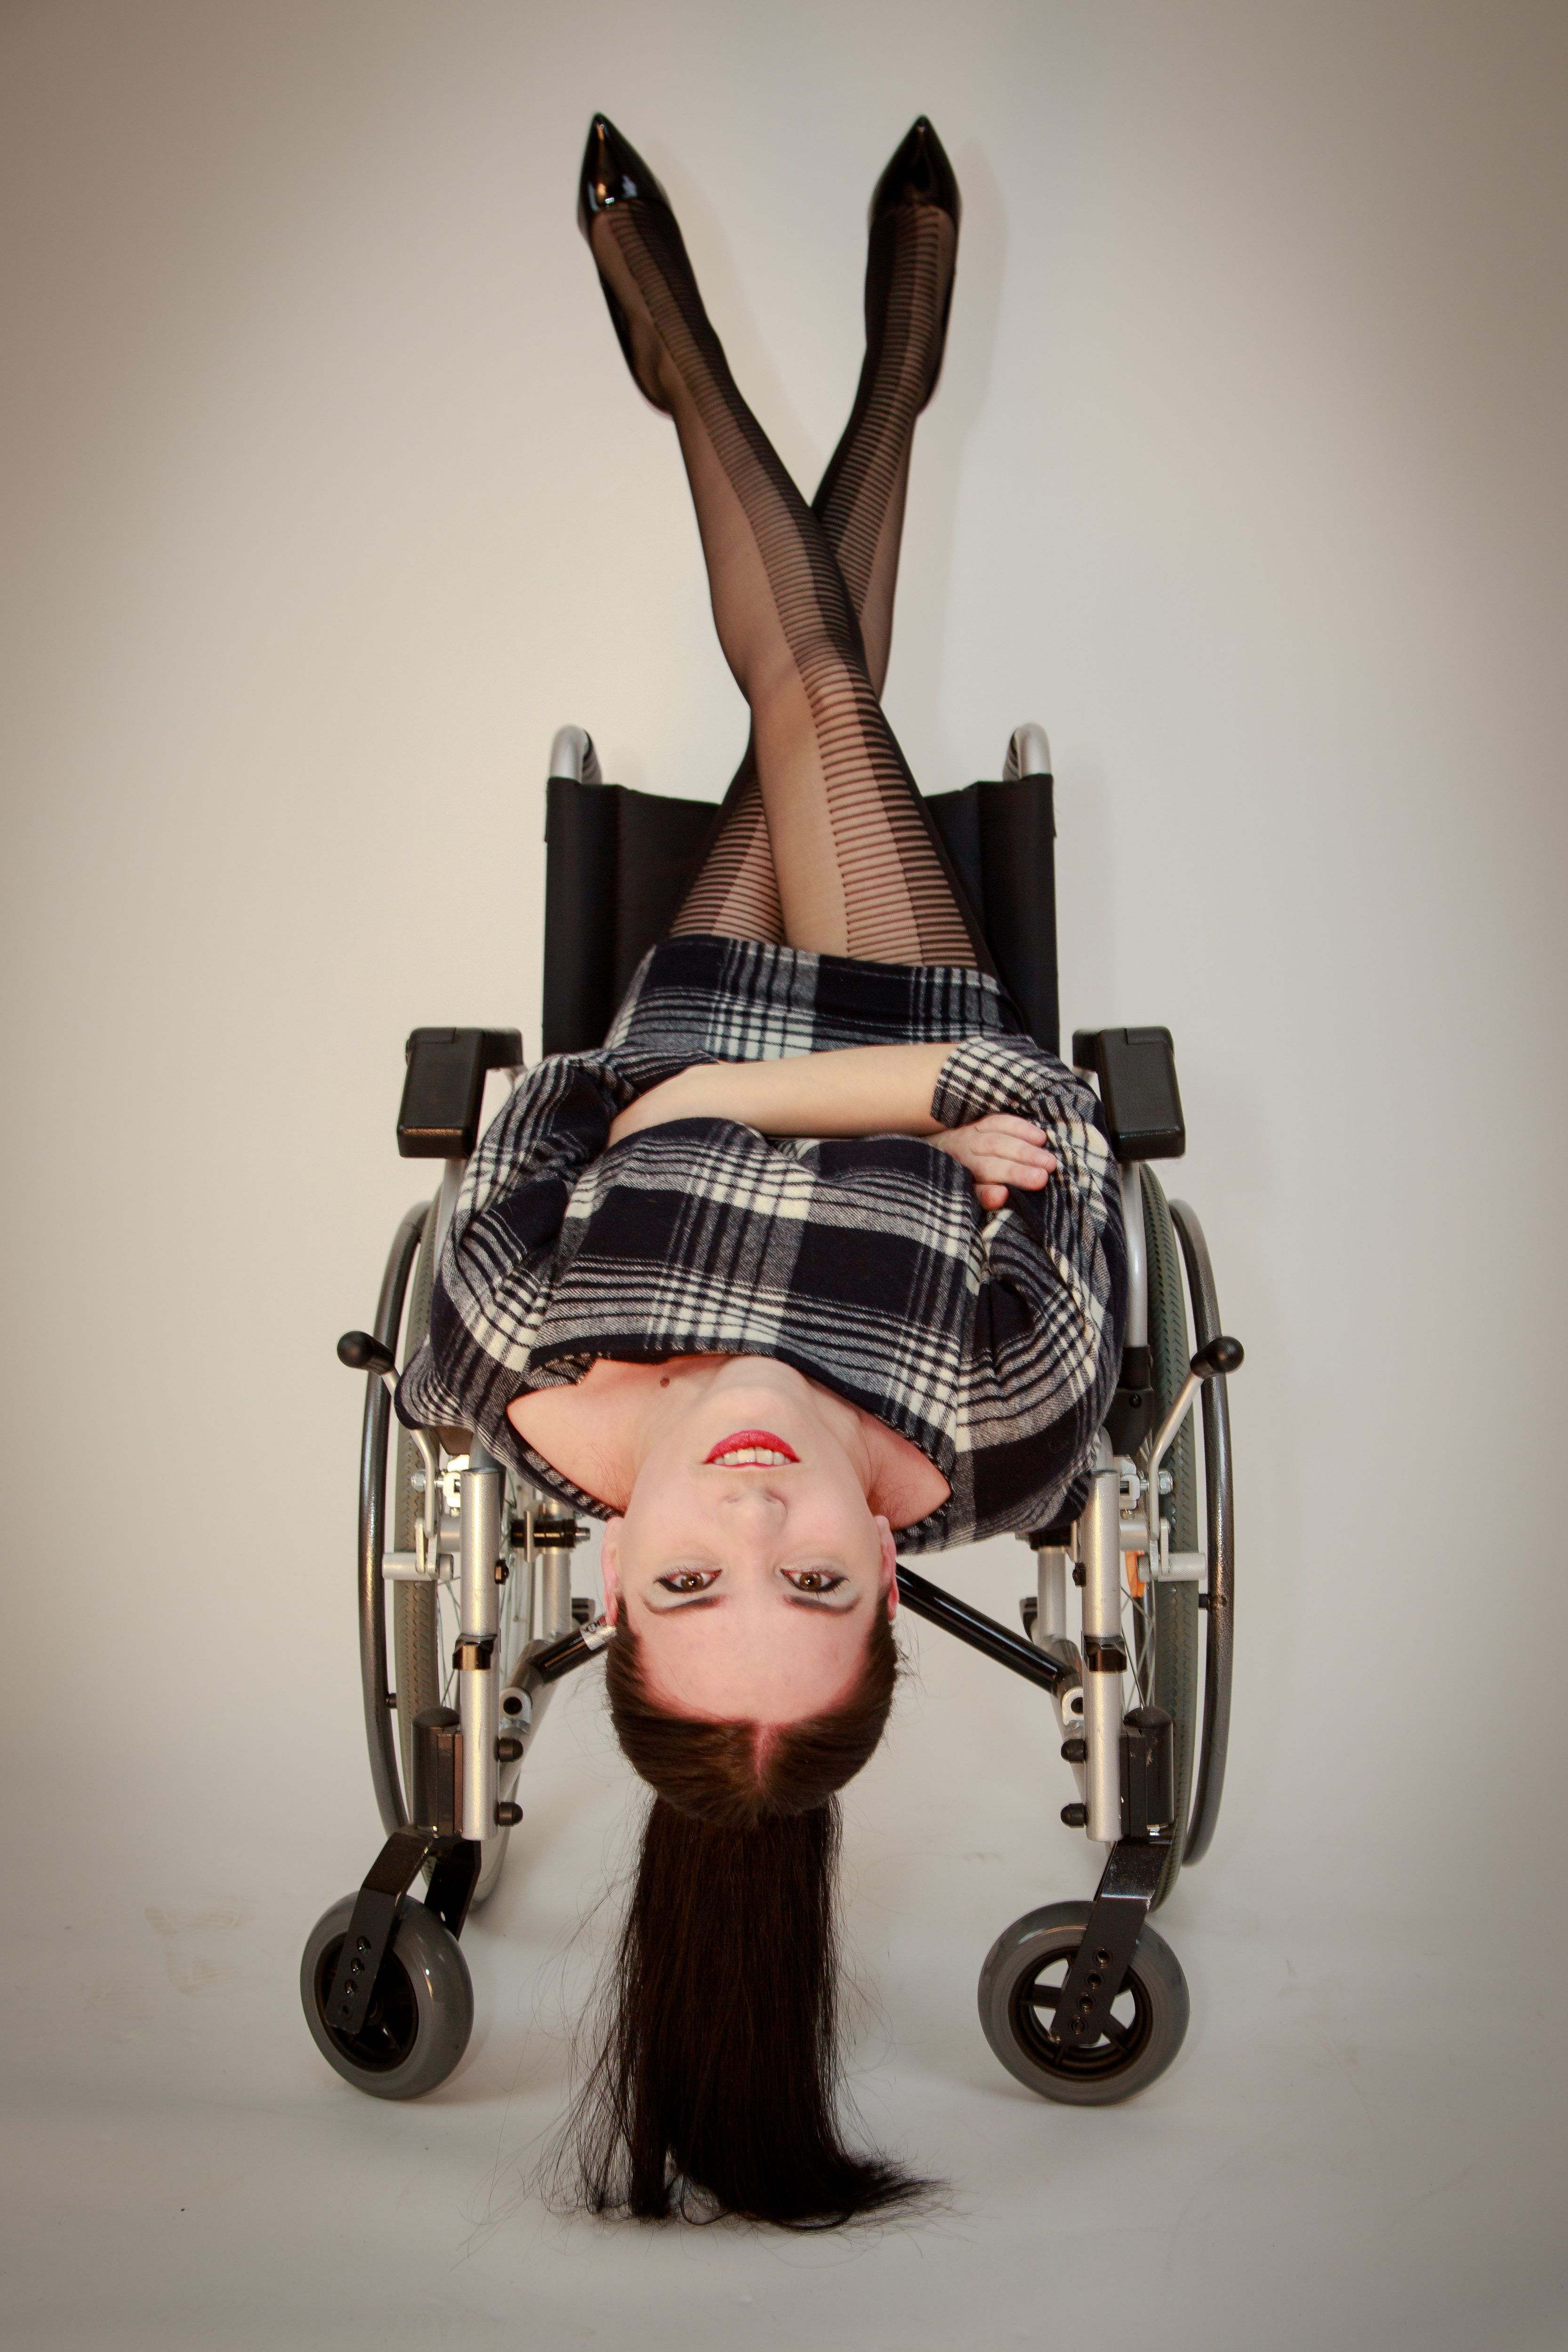 Project Wheelchair, Style, Sexy, Transport, Portrait, HQ Photo